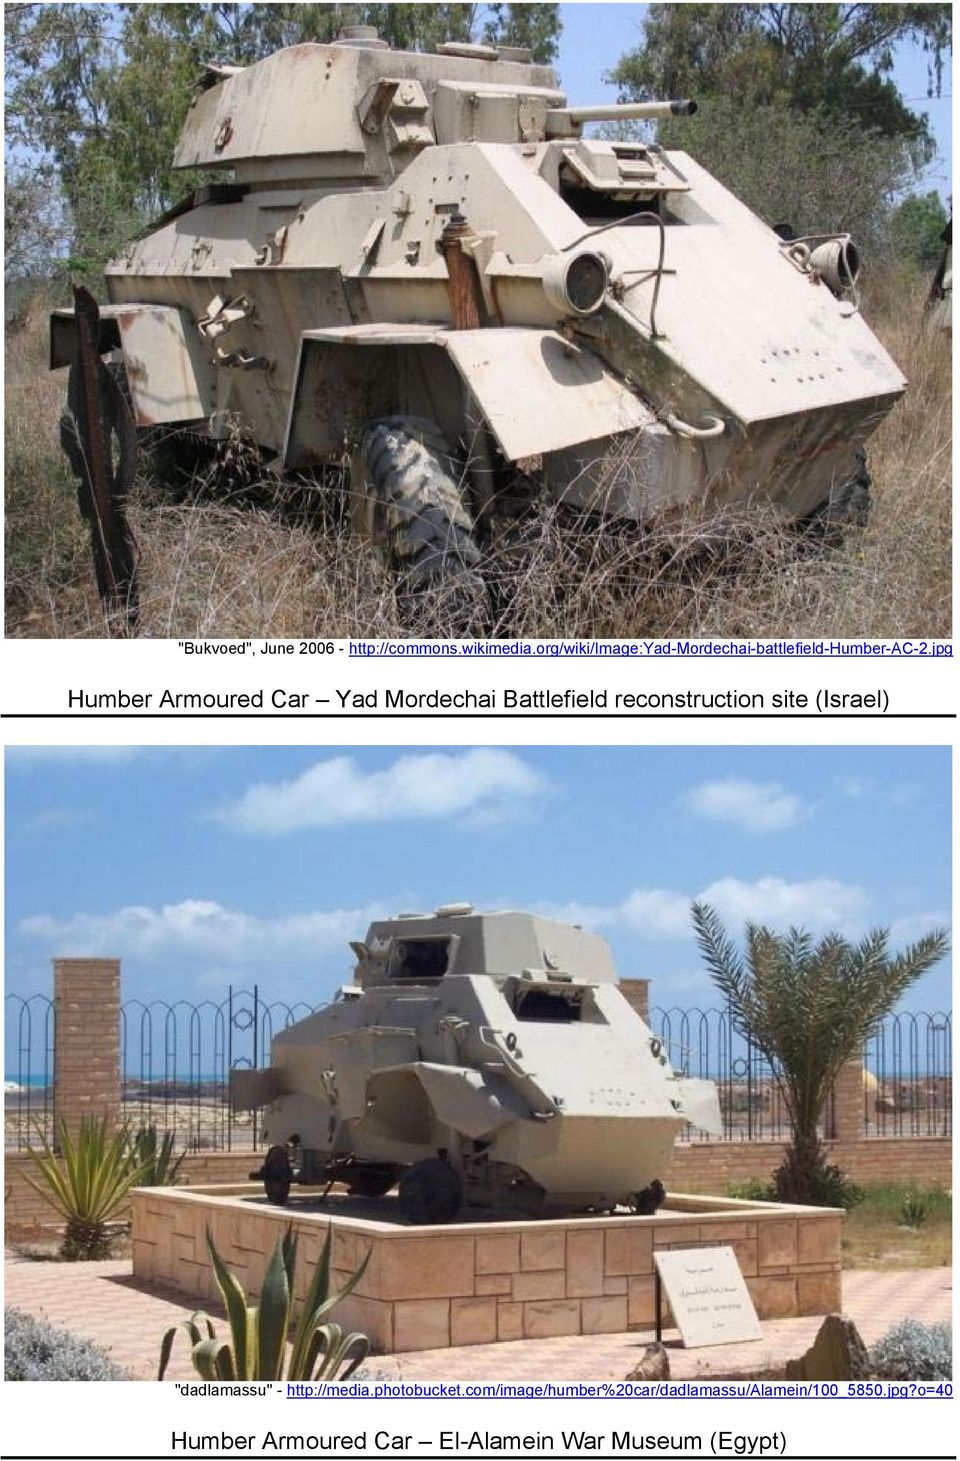 jpg Humber Armoured Car Yad Mordechai Battlefield reconstruction site (Israel)